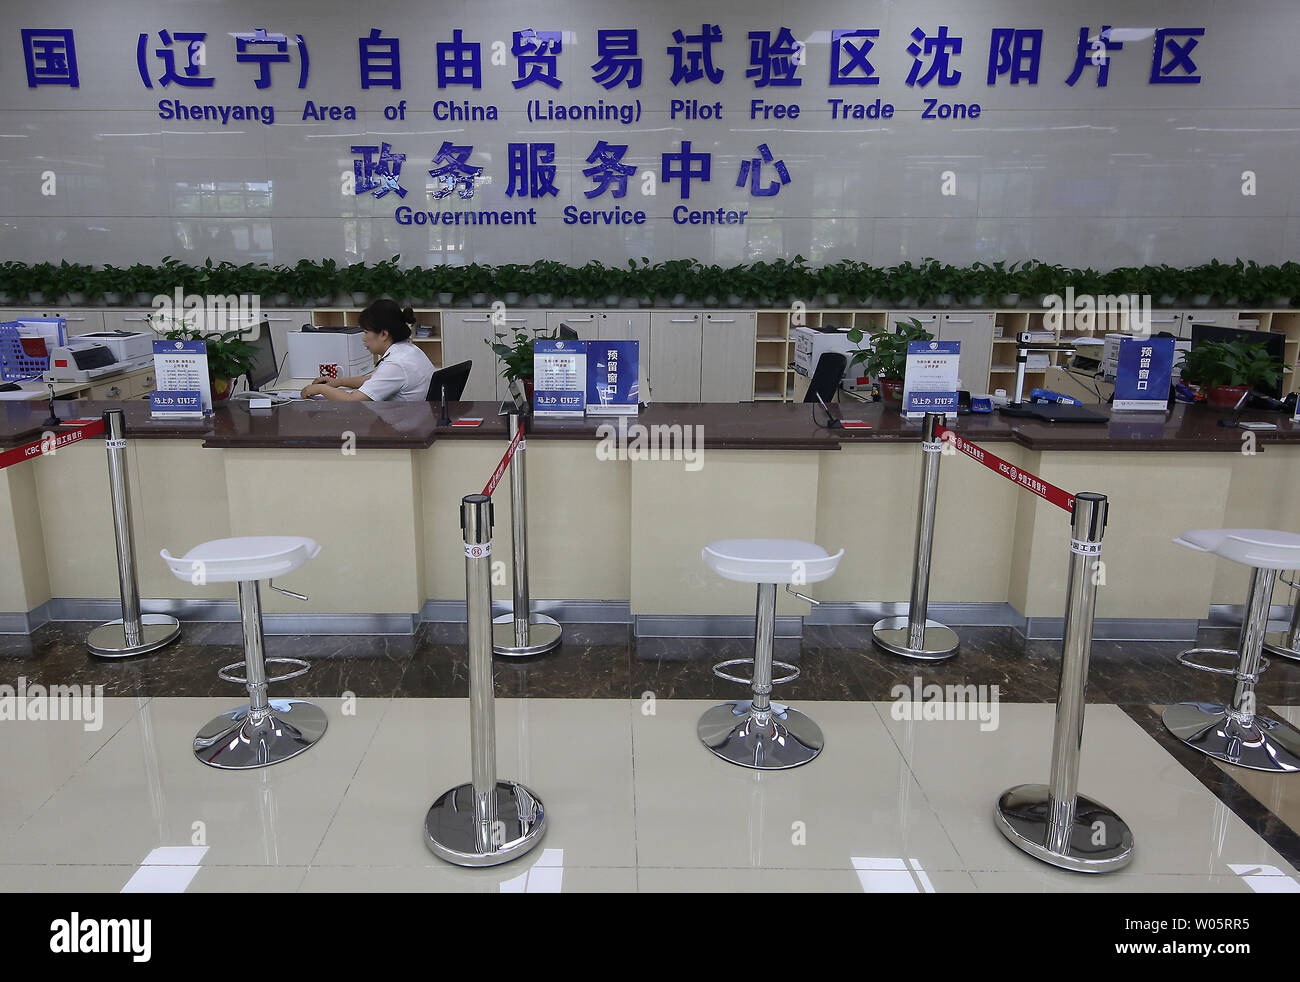 A lone government employee waits for customers at Shenyang's